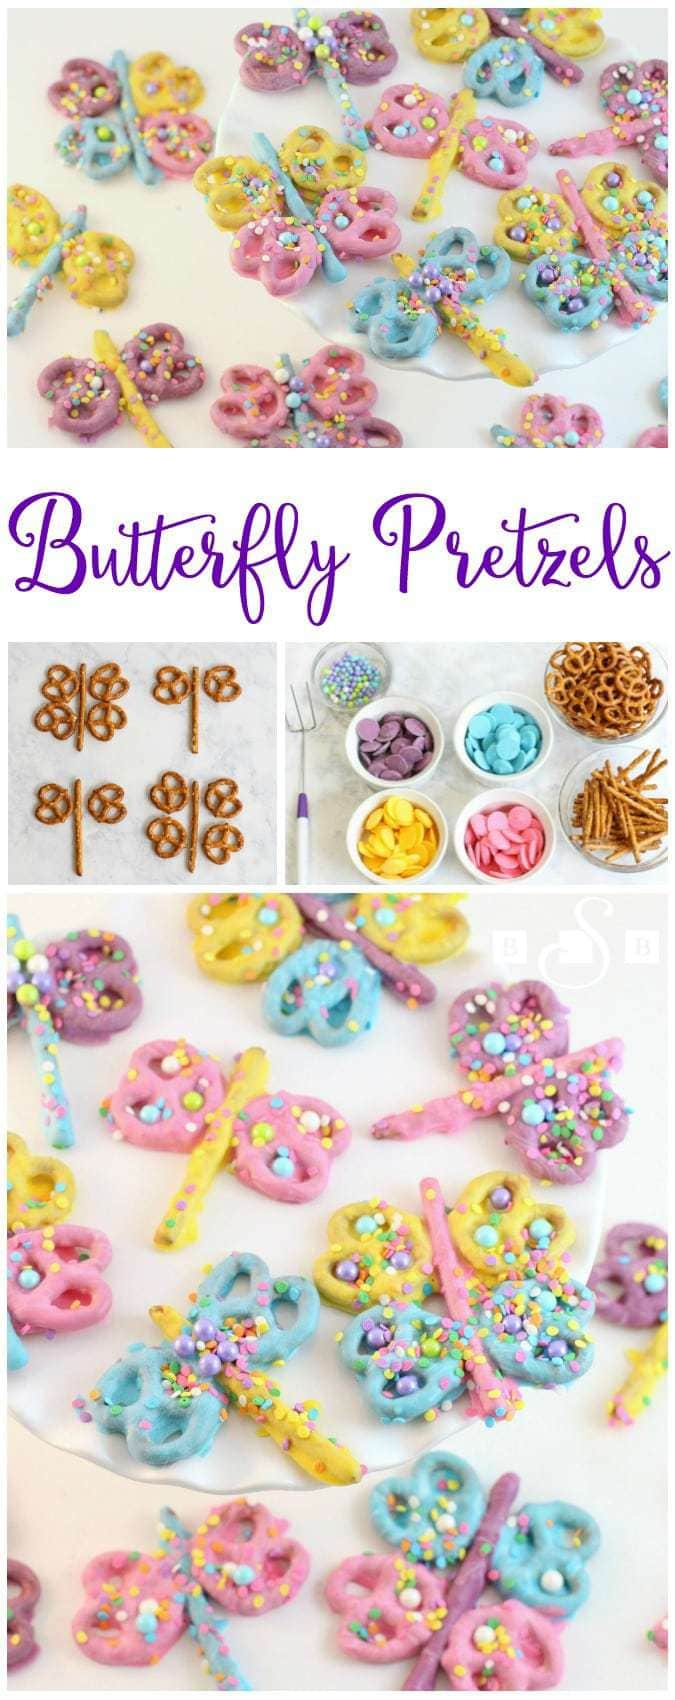 I saw this idea to make butterflies and dragonflies out of pretzels not too long ago. I'm a big fan of pretzels- I love how inexpensive they are and how good they taste when covered in chocolate! My kids absolutely adored these. We had just as much fun making them as we did eating them. I think they'd be darling cupcake toppers too!